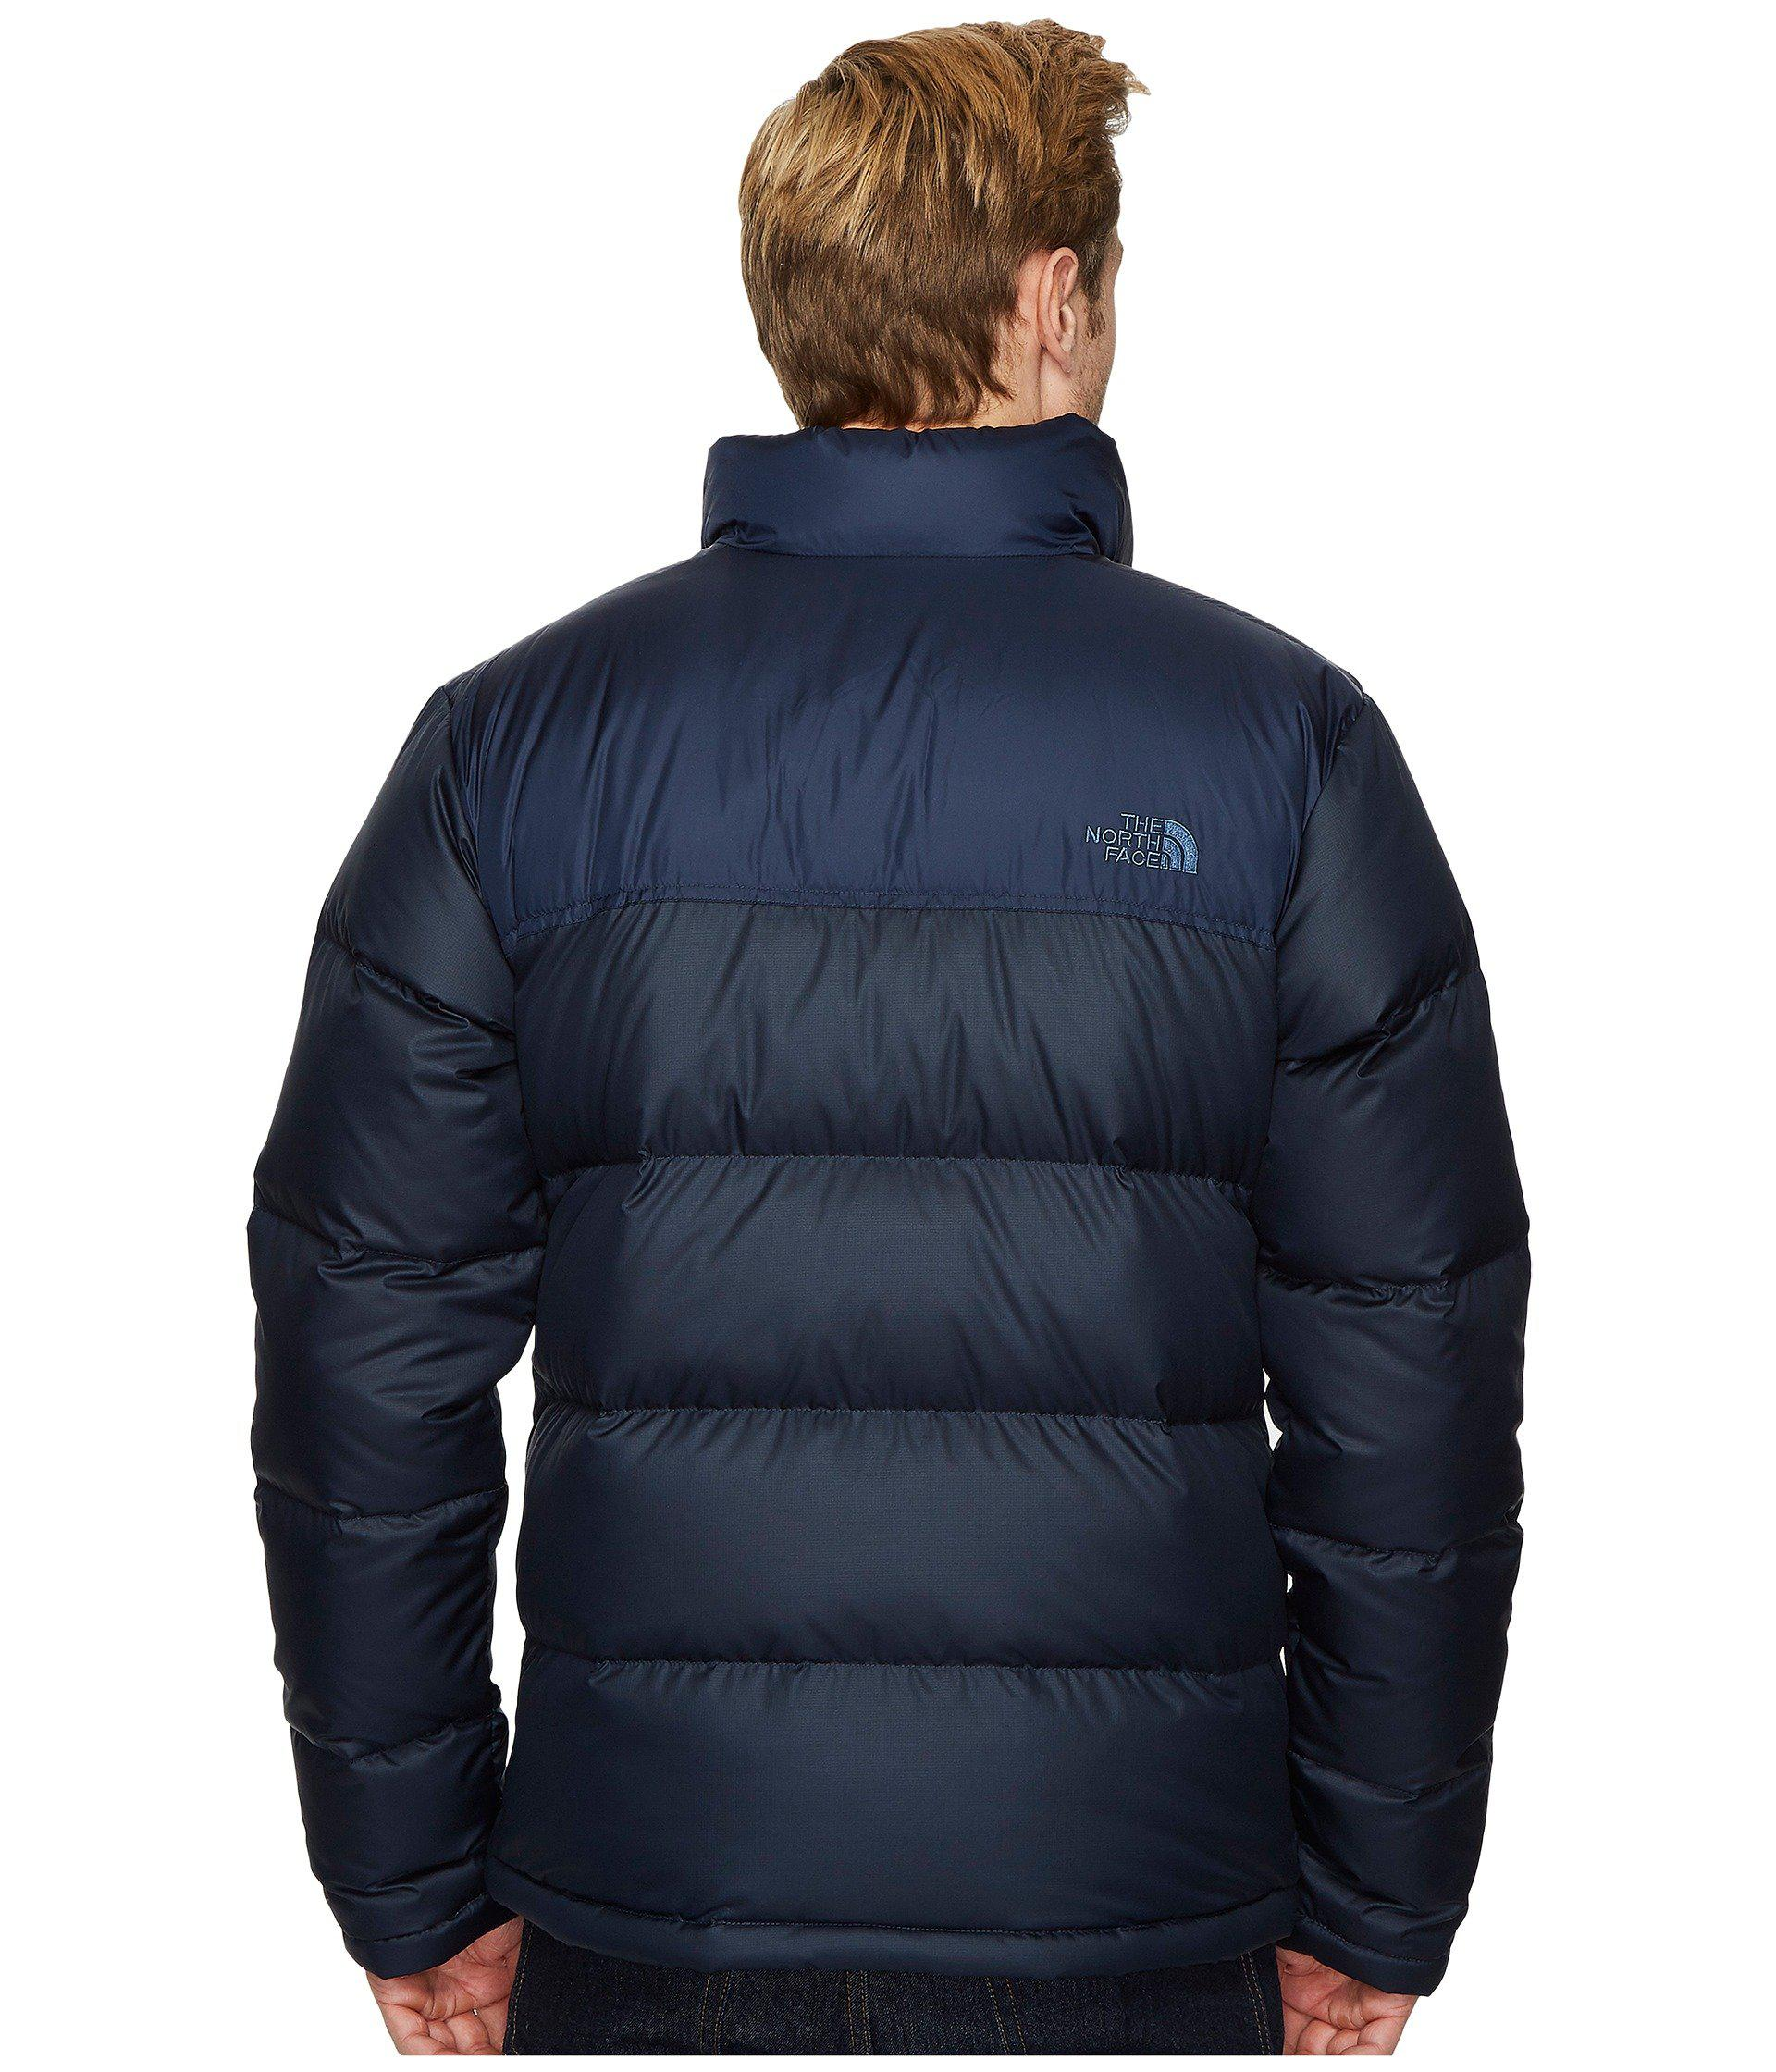 Lyst - The North Face Nuptse Jacket in Blue for Men 3d35bc87d